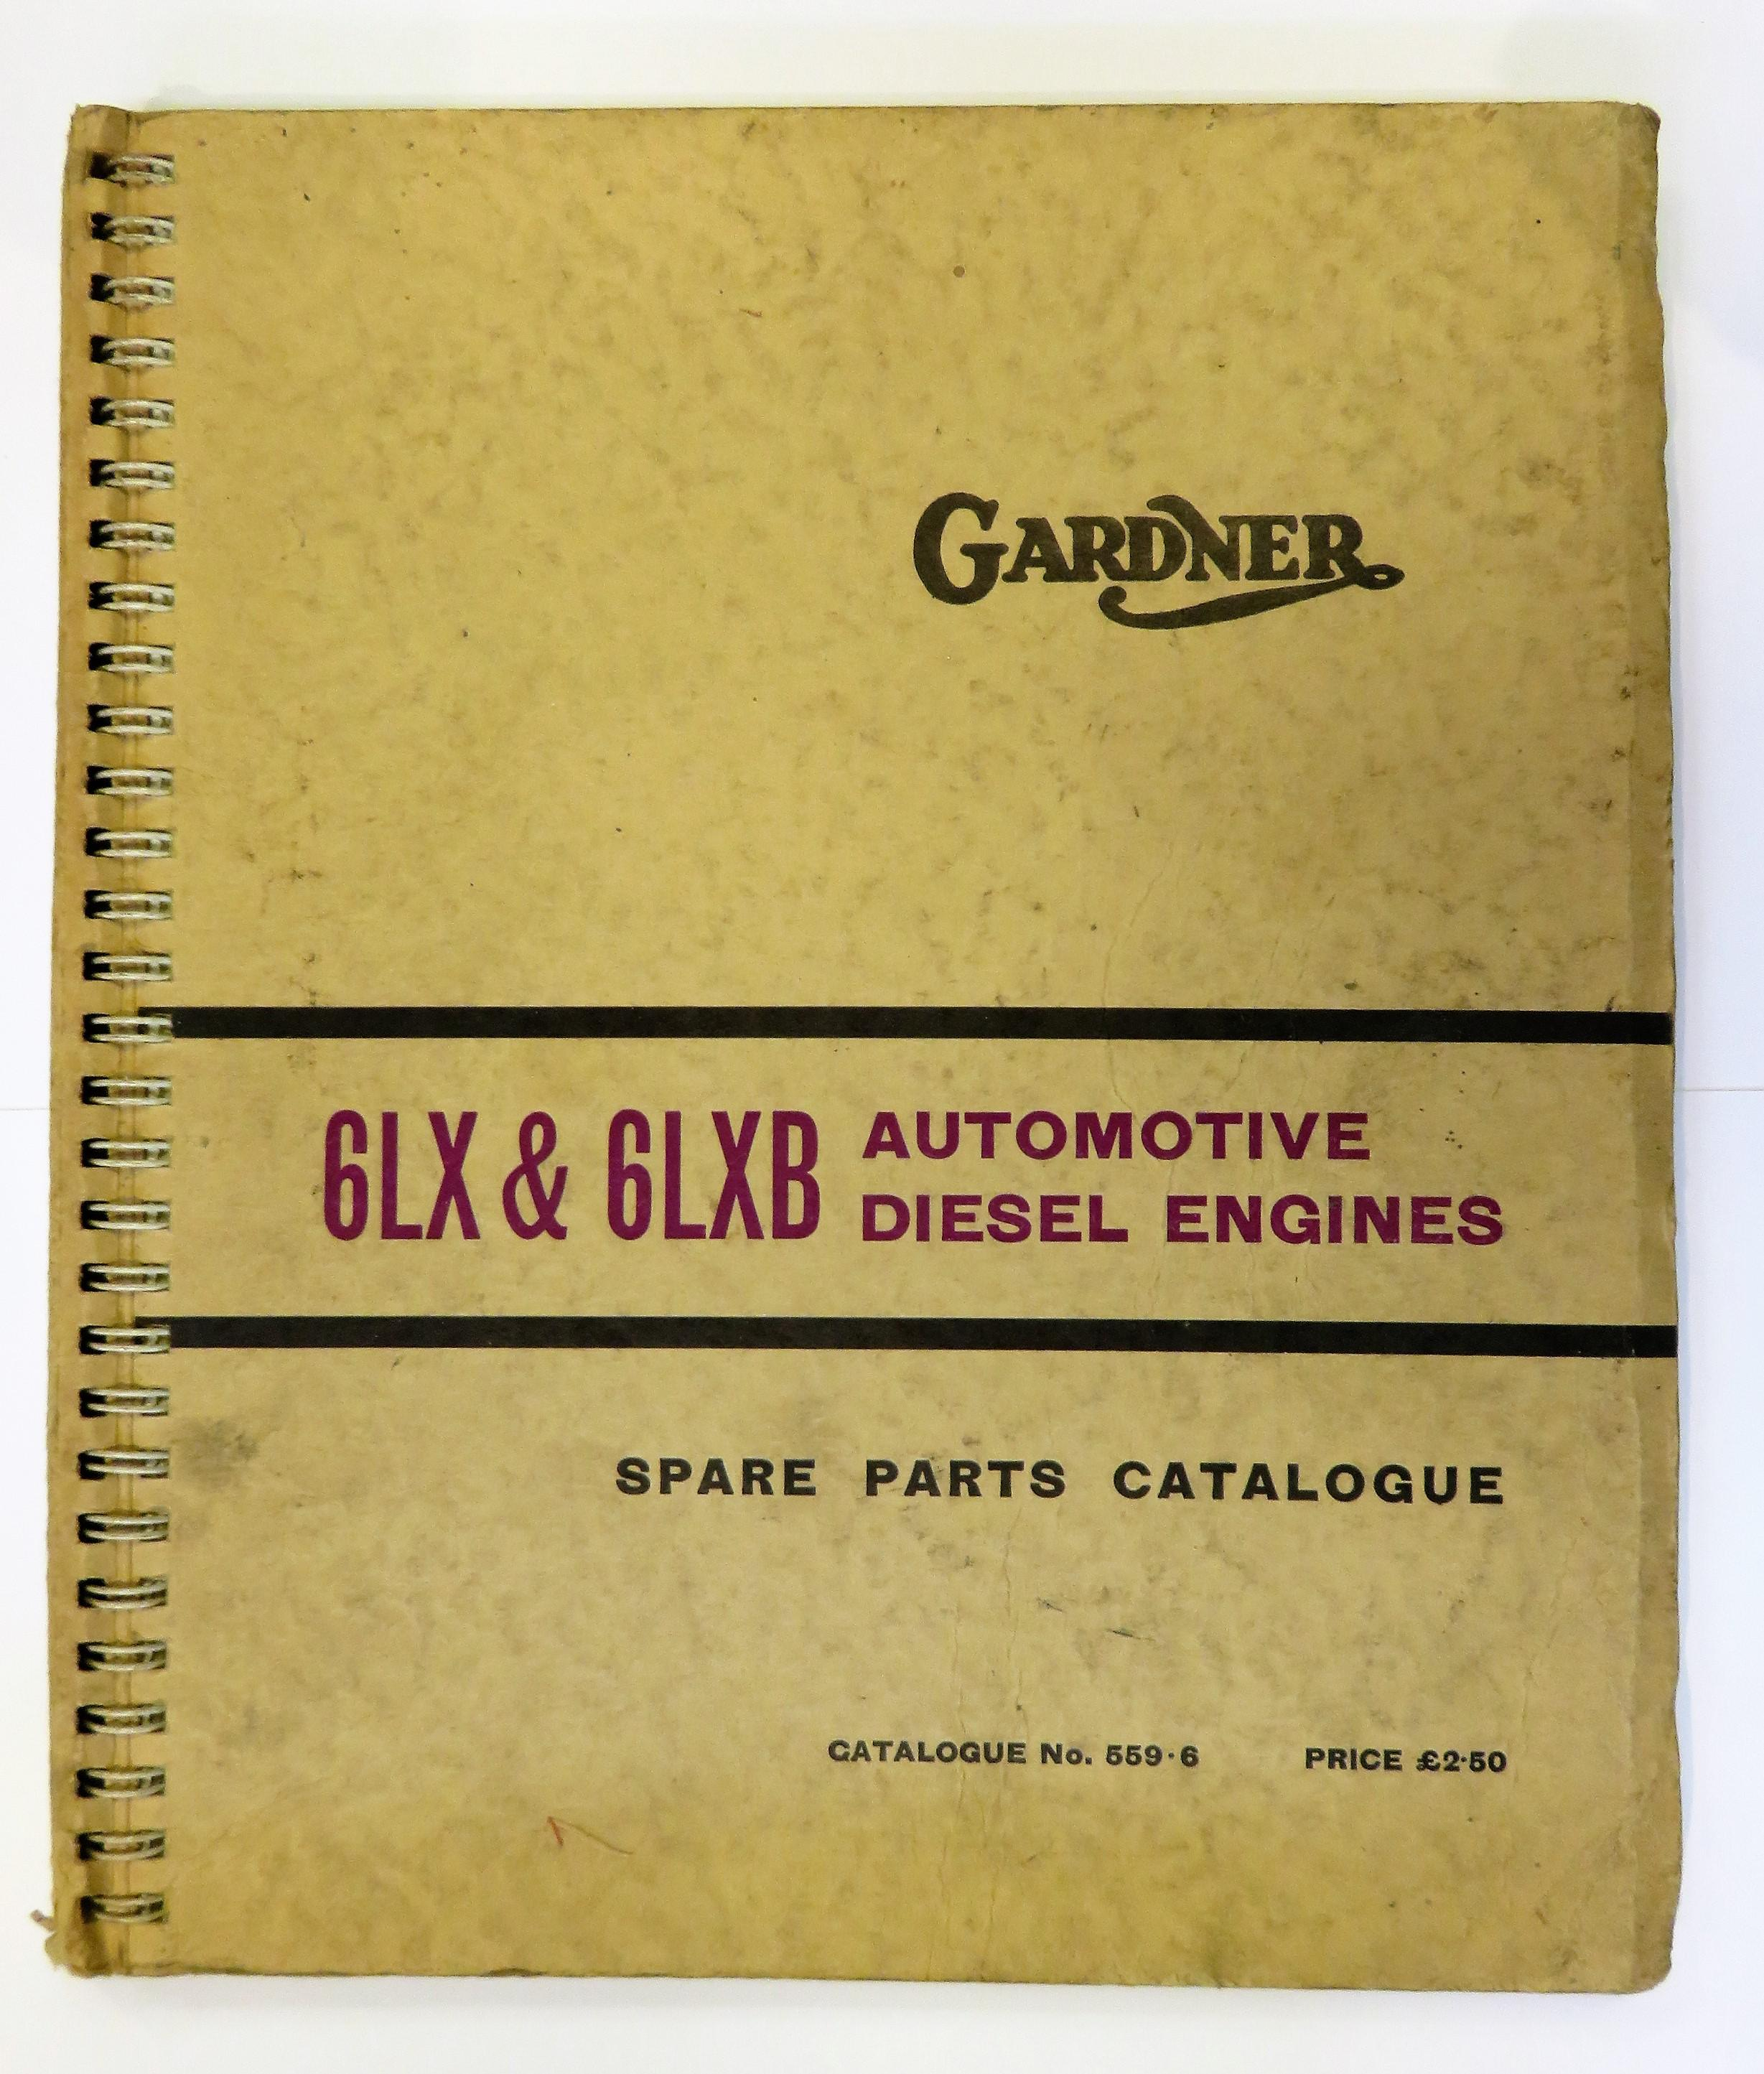 Gardner Spare Parts Catalogue for the 6LX & 6LXB Automotive Diesel Engine